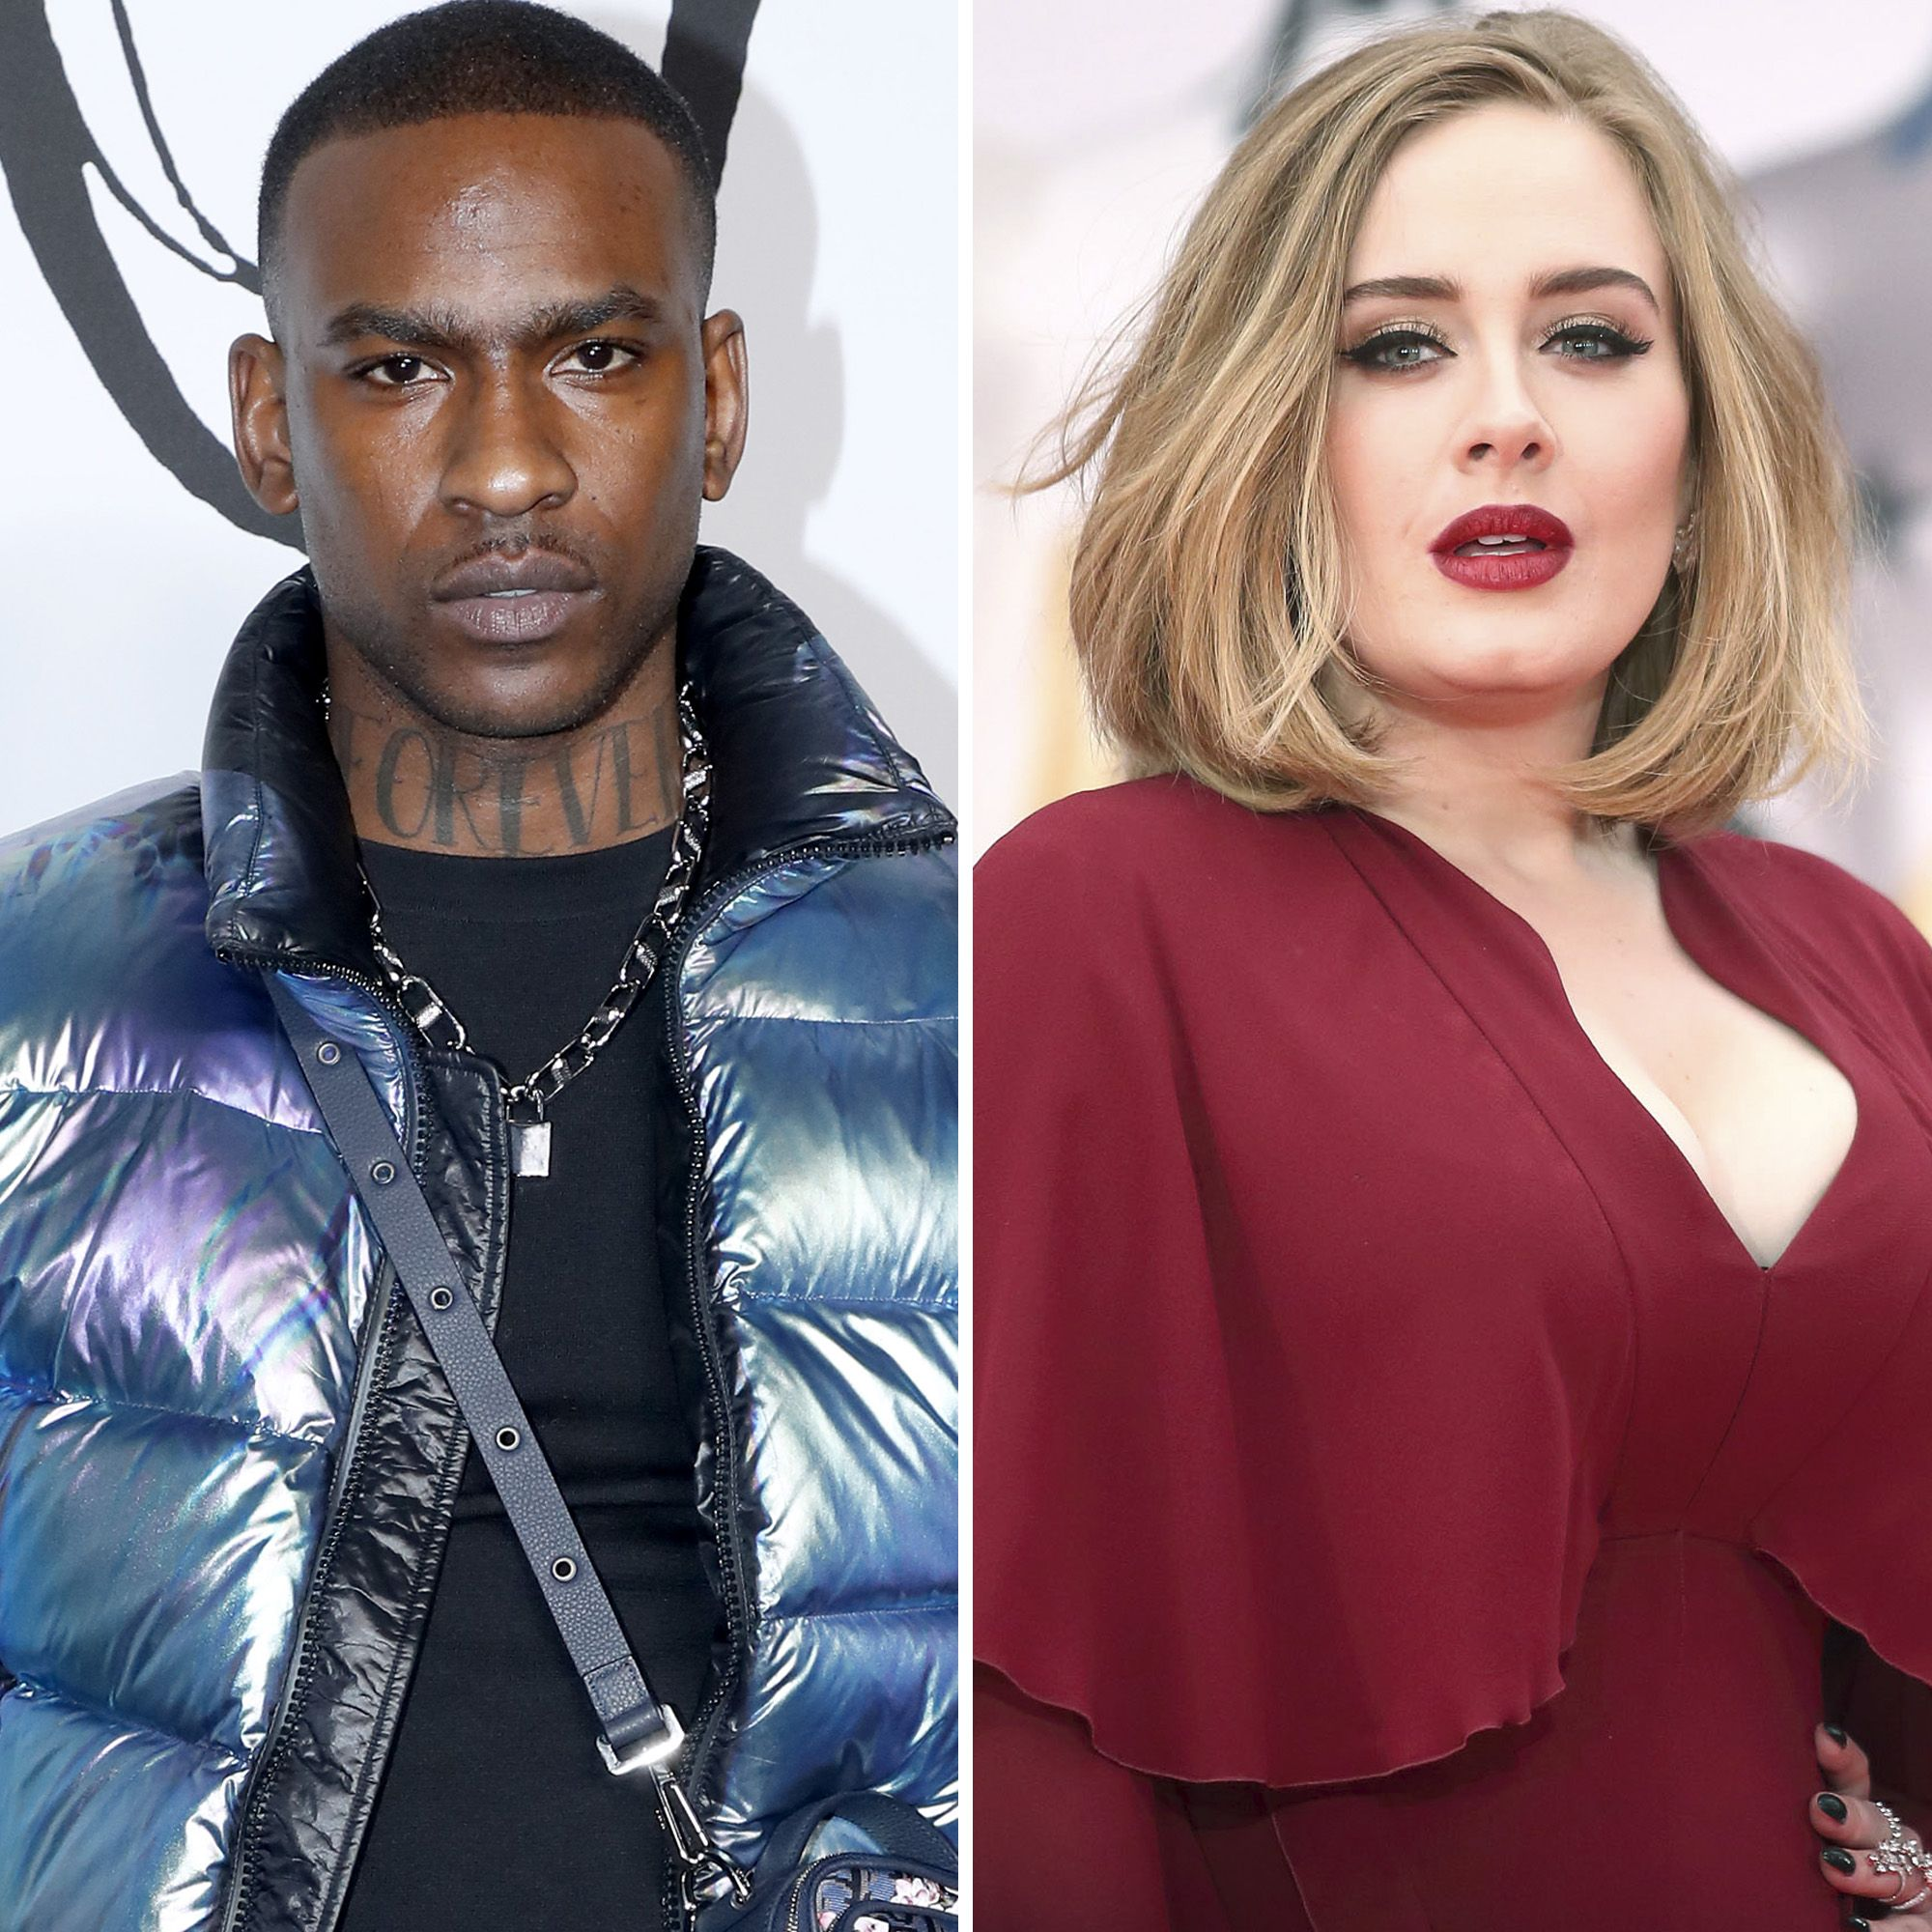 Are Adele & Skepta Dating? Instagram Clues Hint at Their Relationship